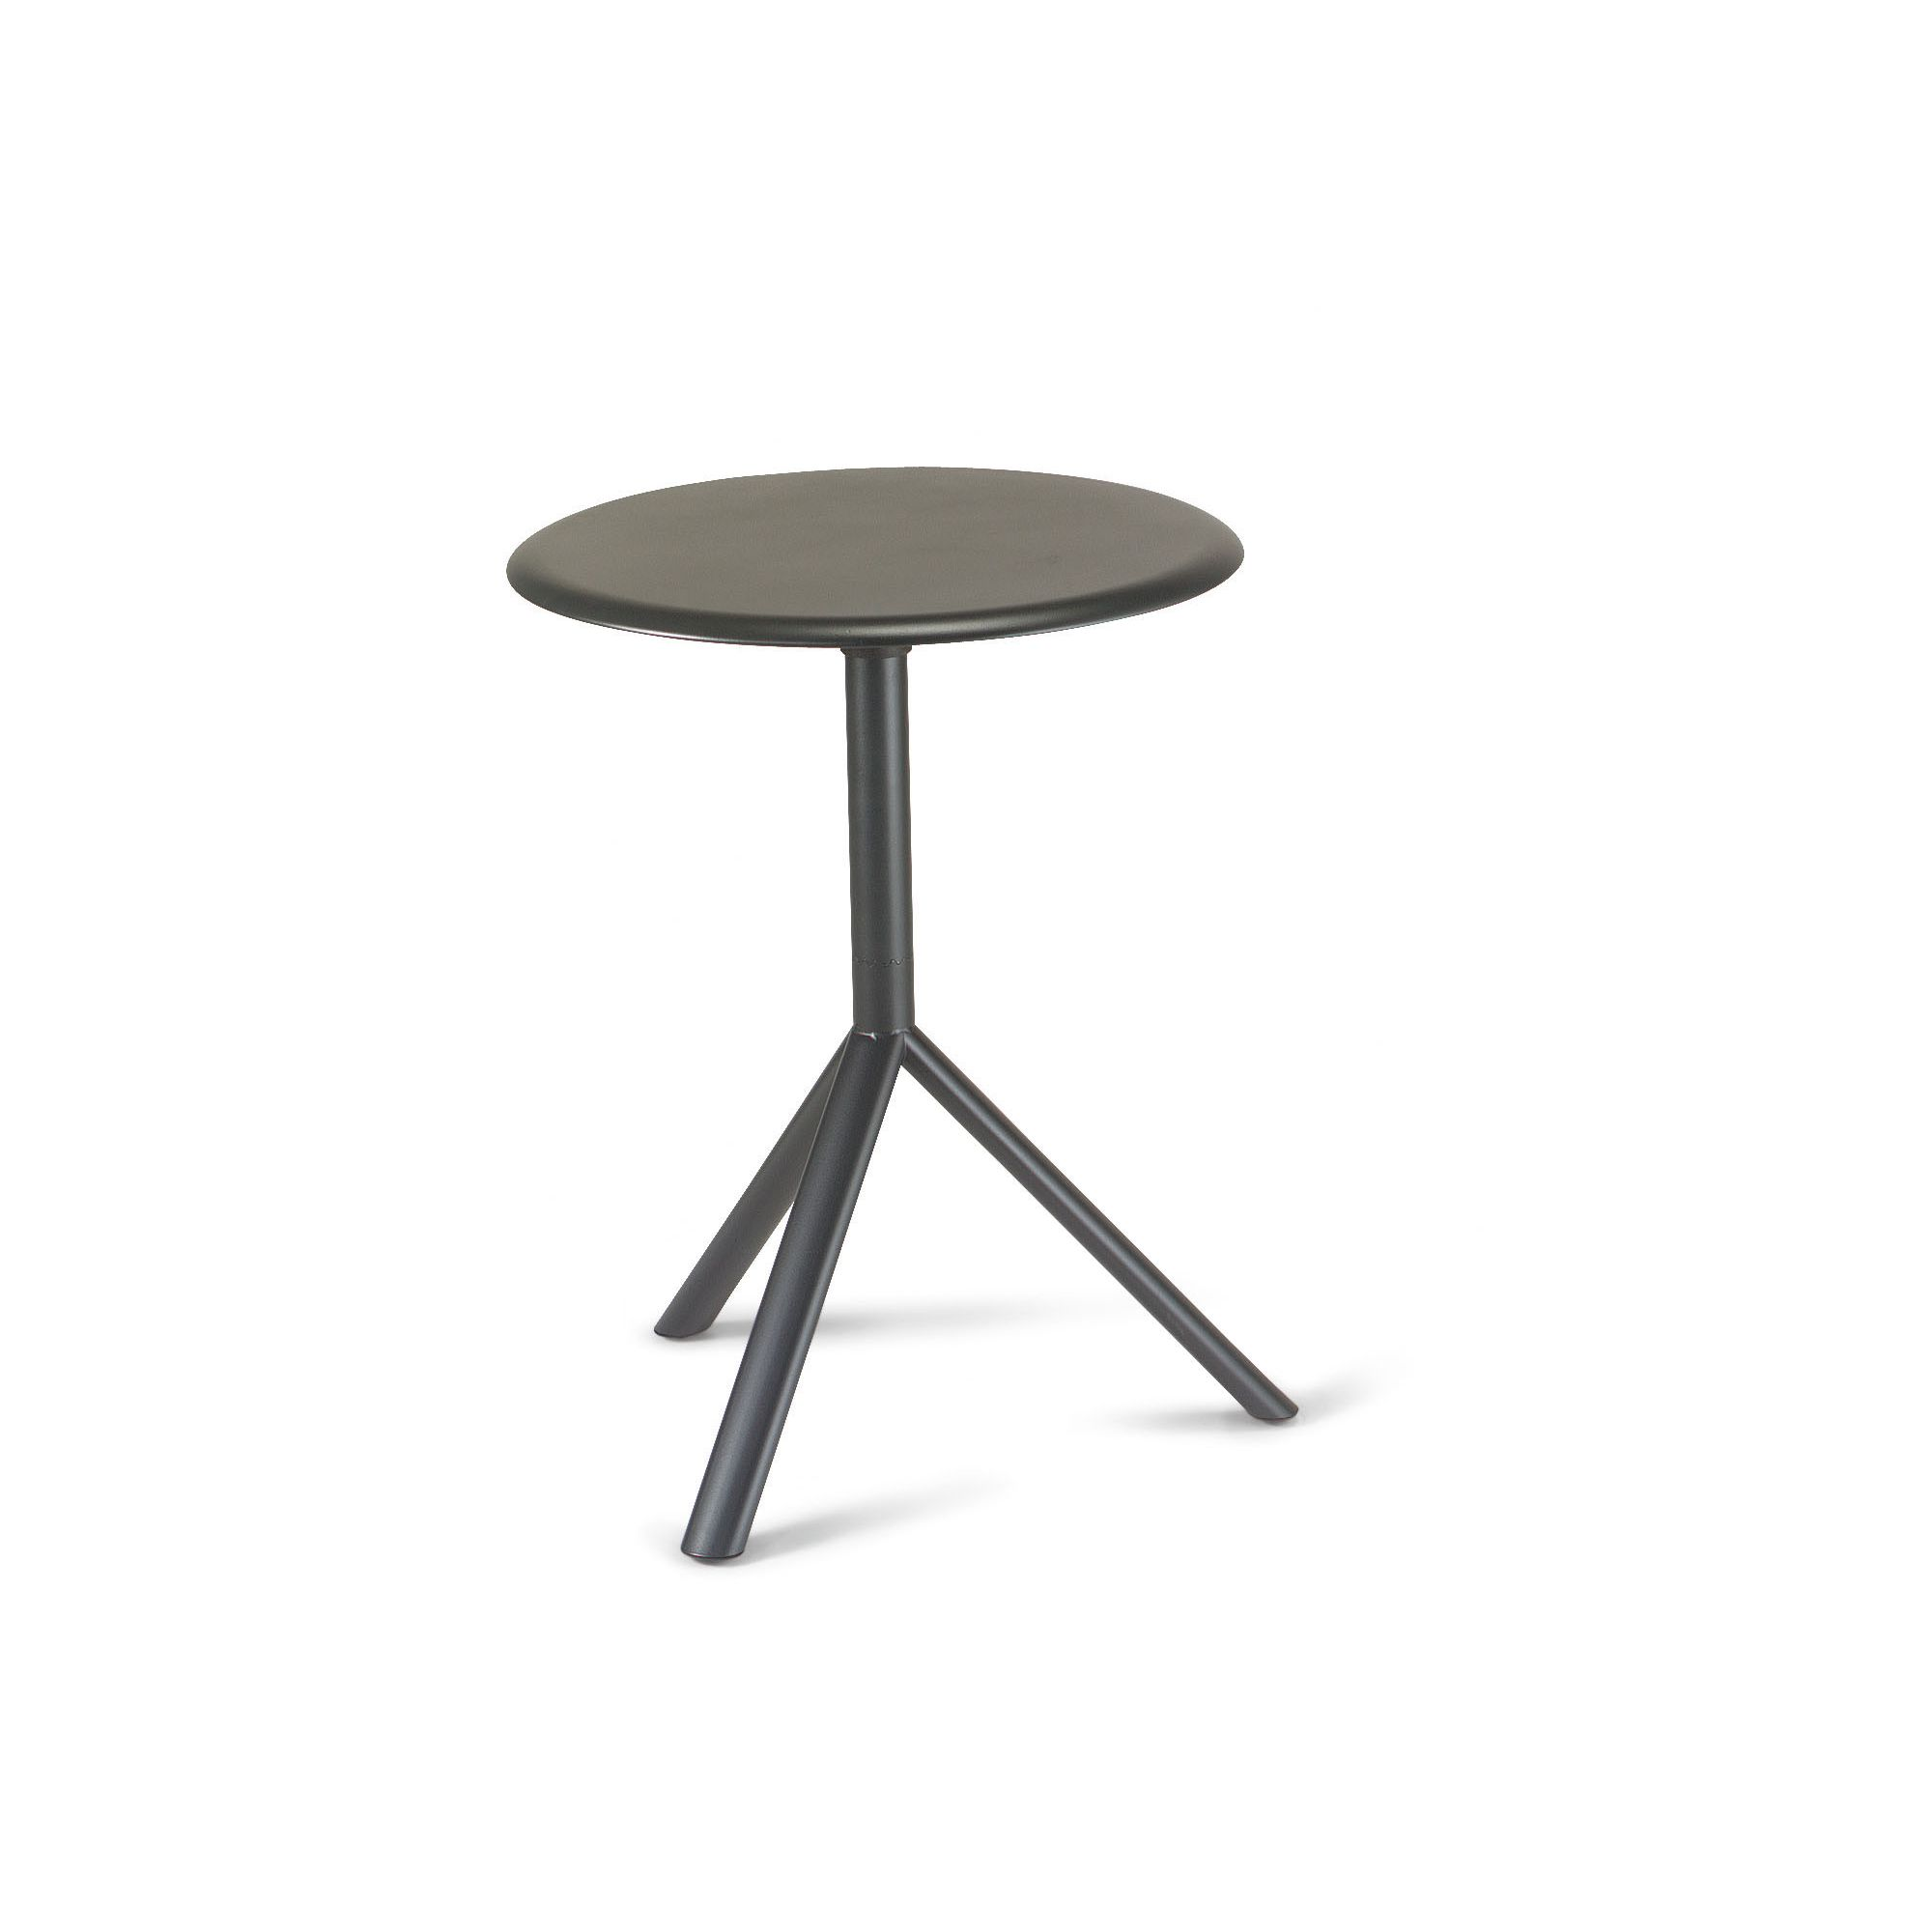 Plank Miura Round Table with High Pressure Laminate Top - 73cm - White at Tesco Direct